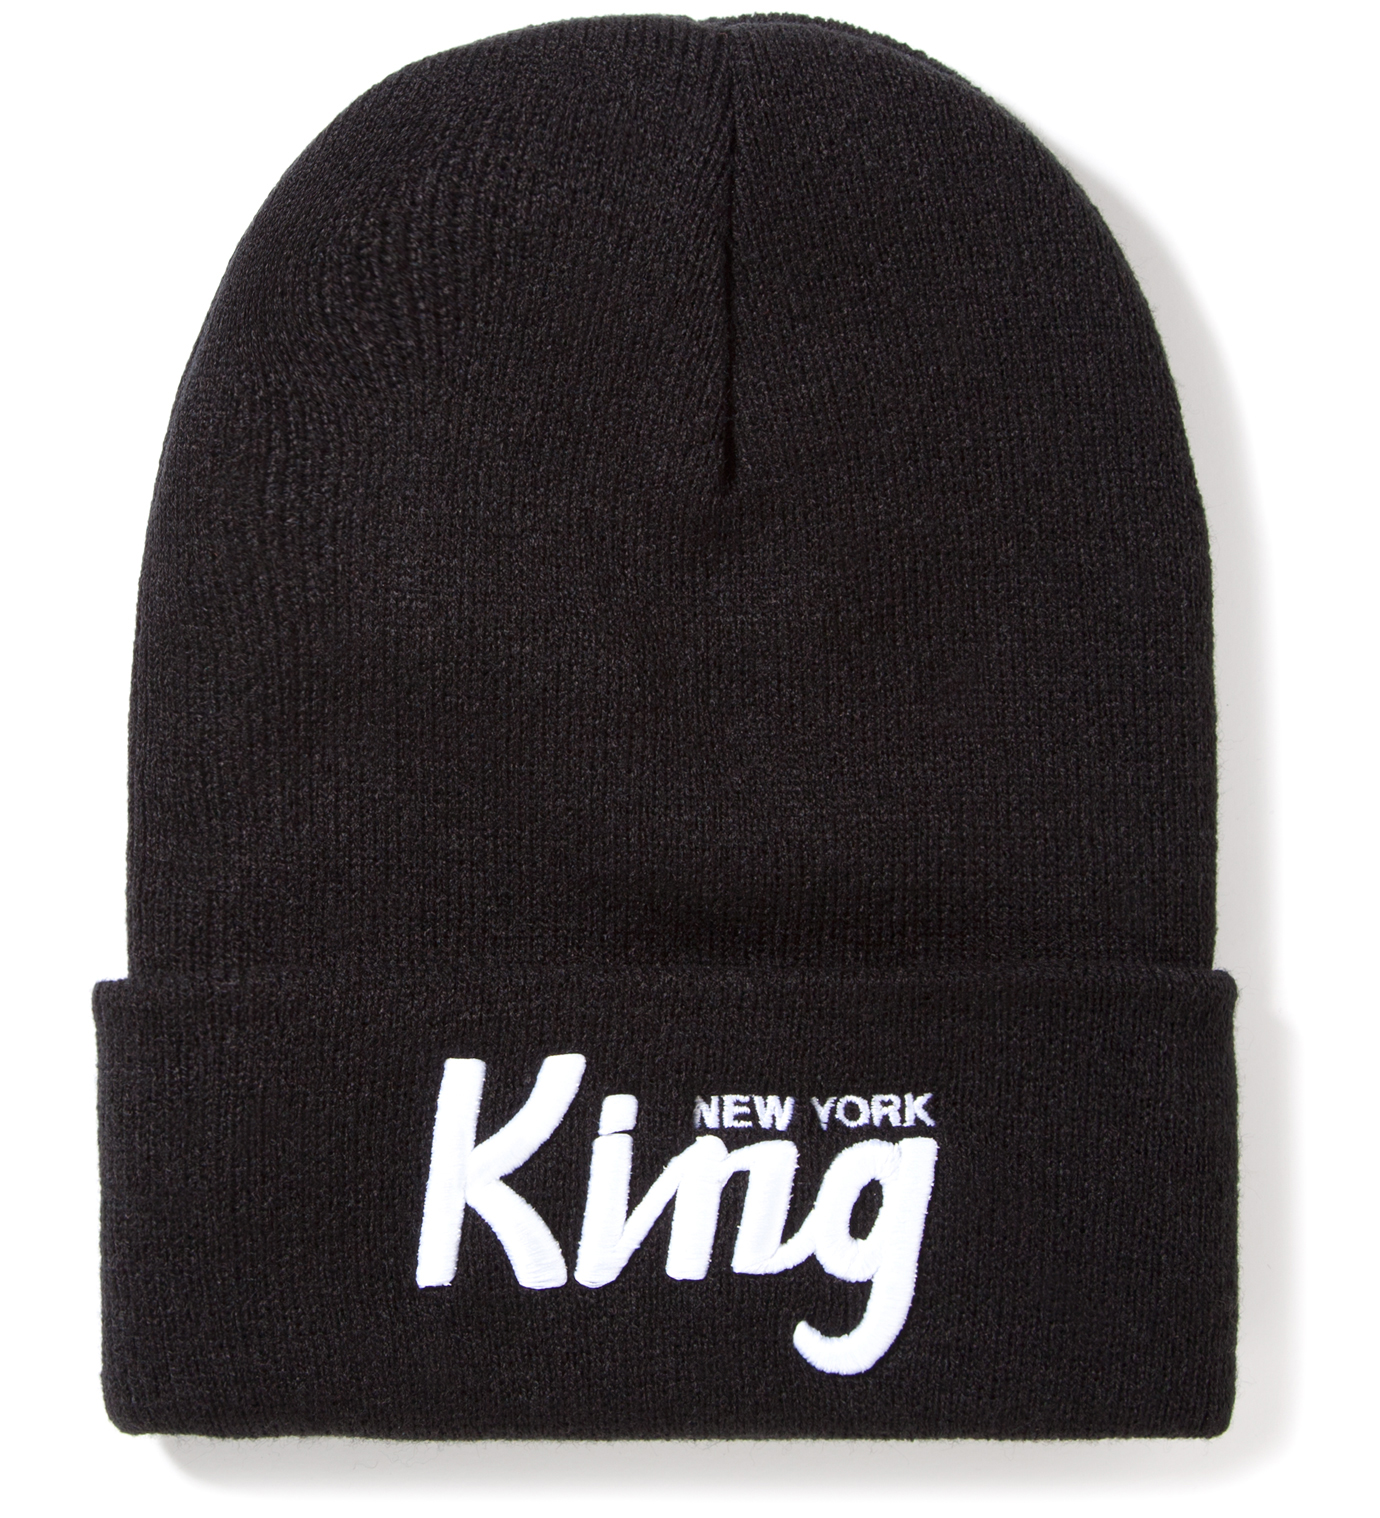 SSUR Black New York King Beanie